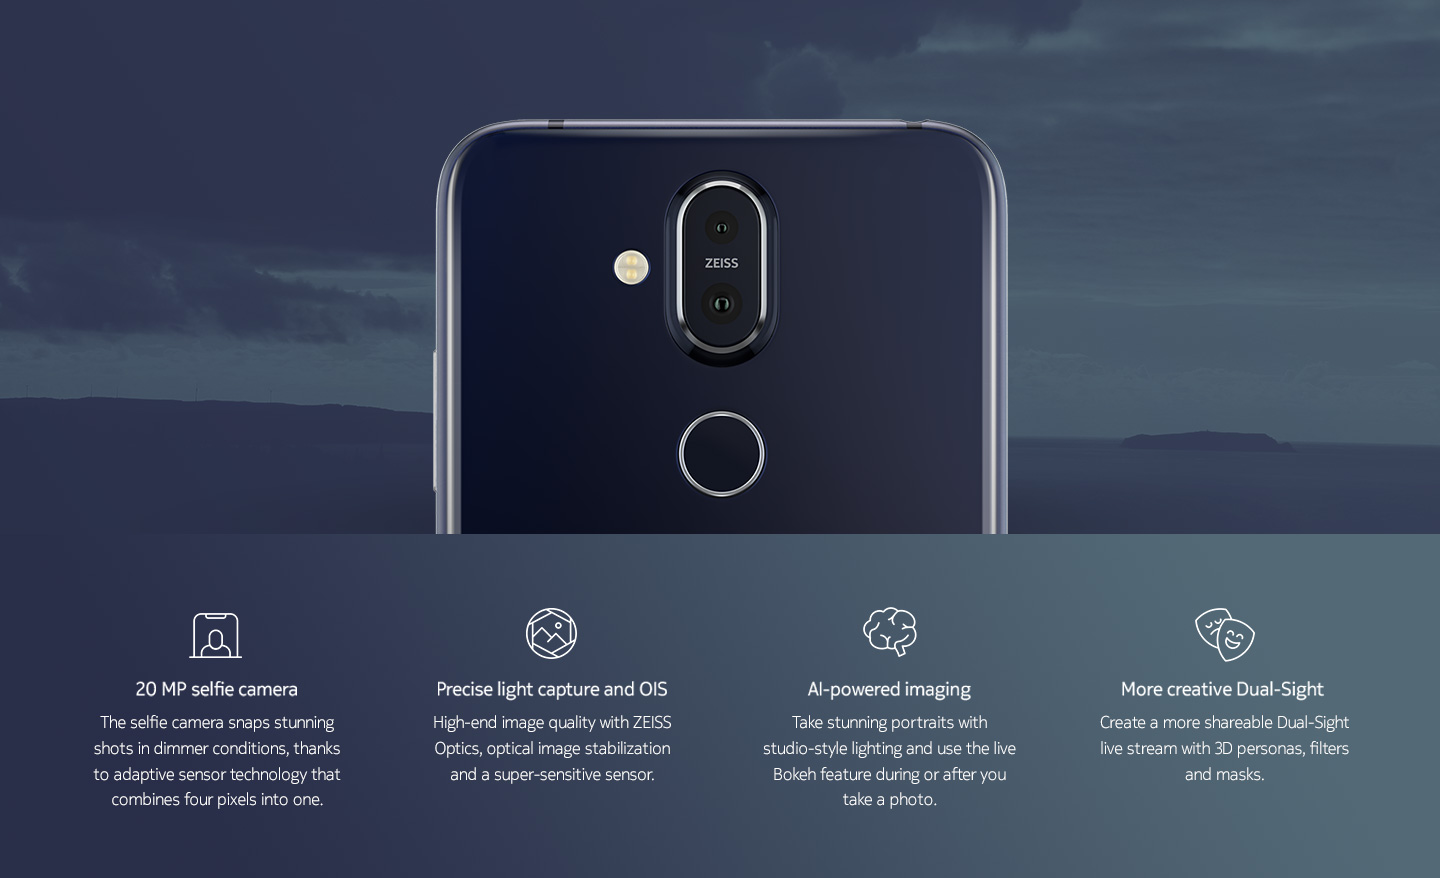 20 MP selfie camera | Precise light capture and OIS | AI-powered imaging | More creative Dual-Sight